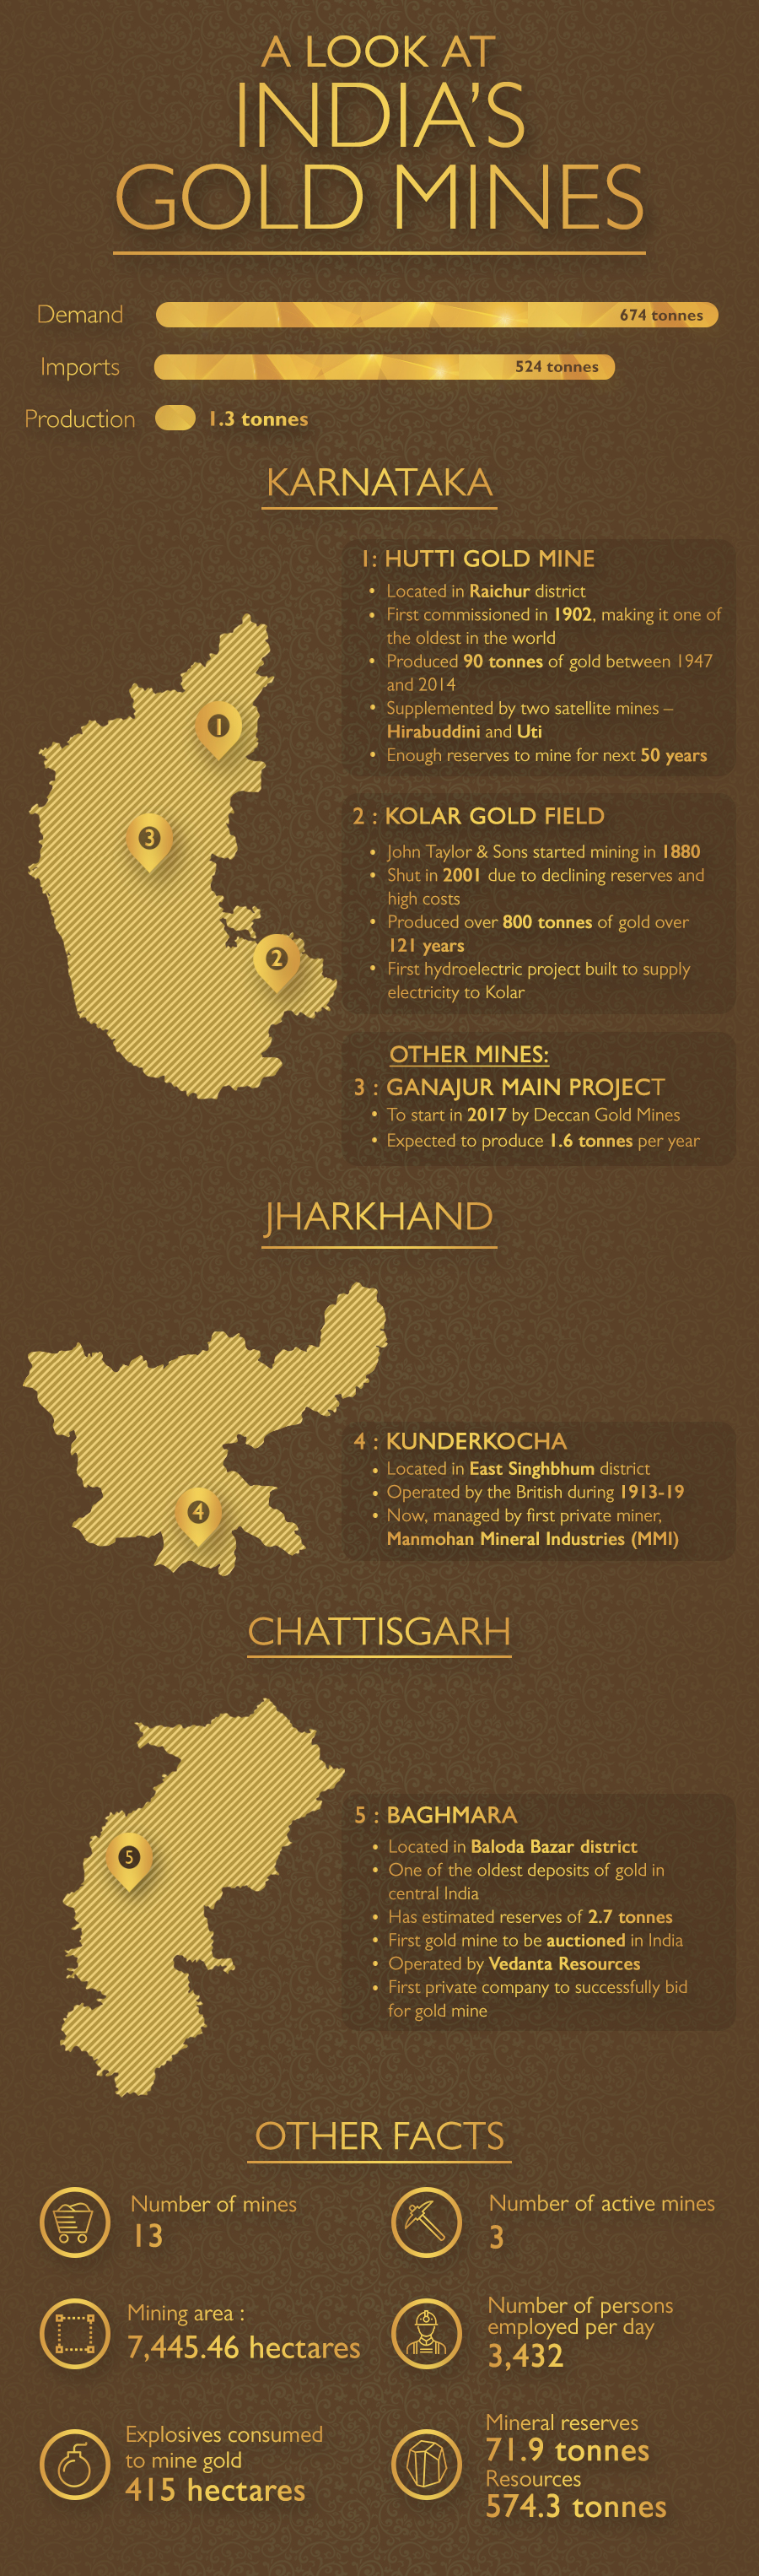 Did you know India has 13 gold mines are located in various states? Let's take a look at the famous Indian gold mines which over the years have supplied gold to fulfil demand.